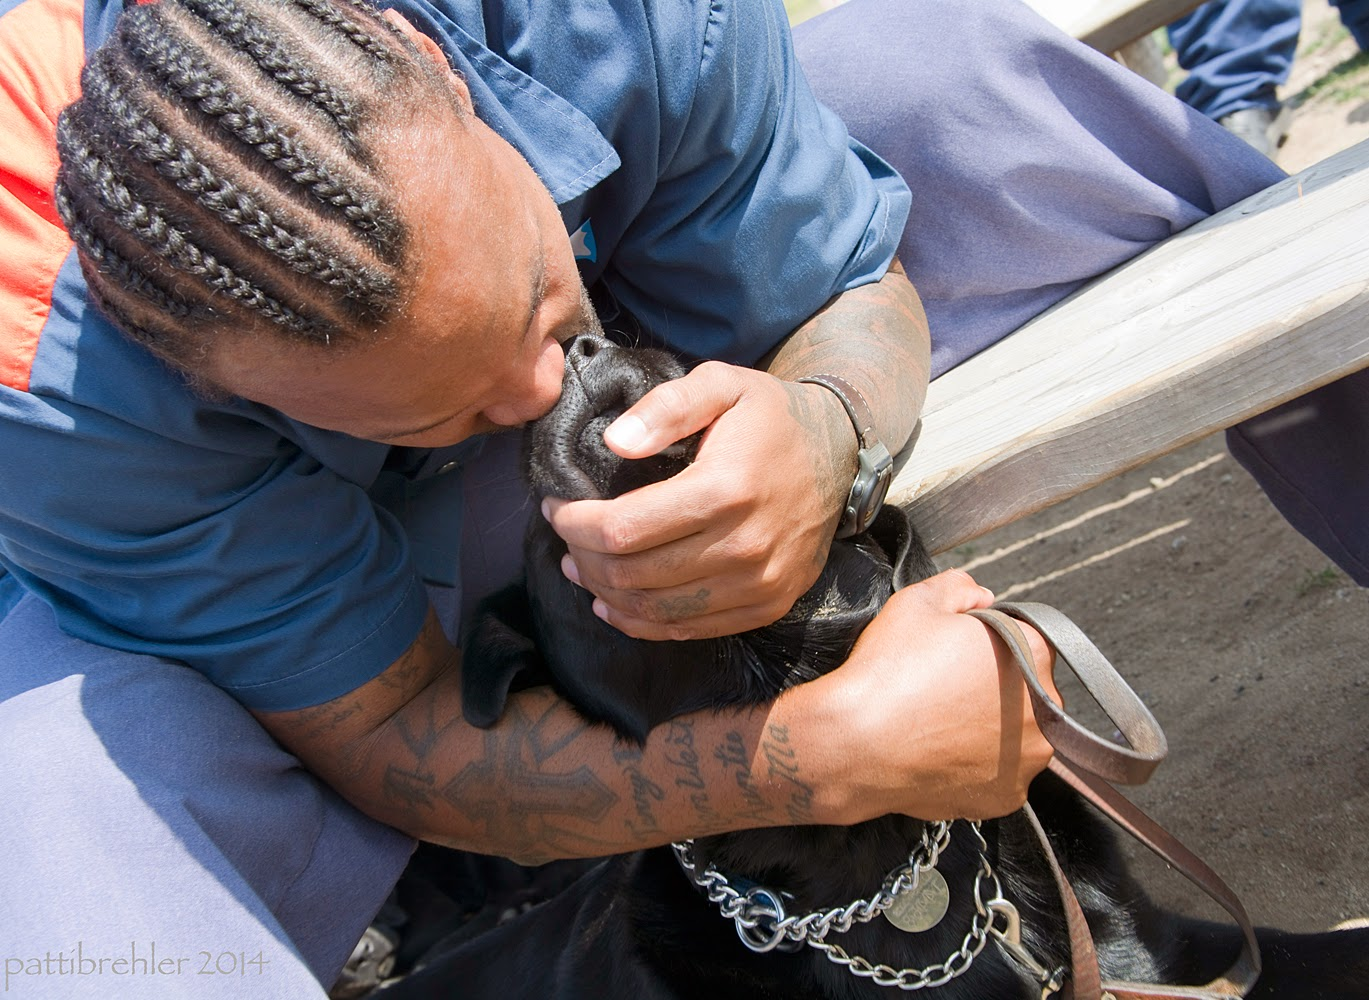 A close head and shoulders shot of the african american man from above. The man has cornrows in his hair. His arms are wrapped around the head of a young black lab that is in front of him. The man is pulling the dog's snout to his face and giving the dog a big kiss on his nose.